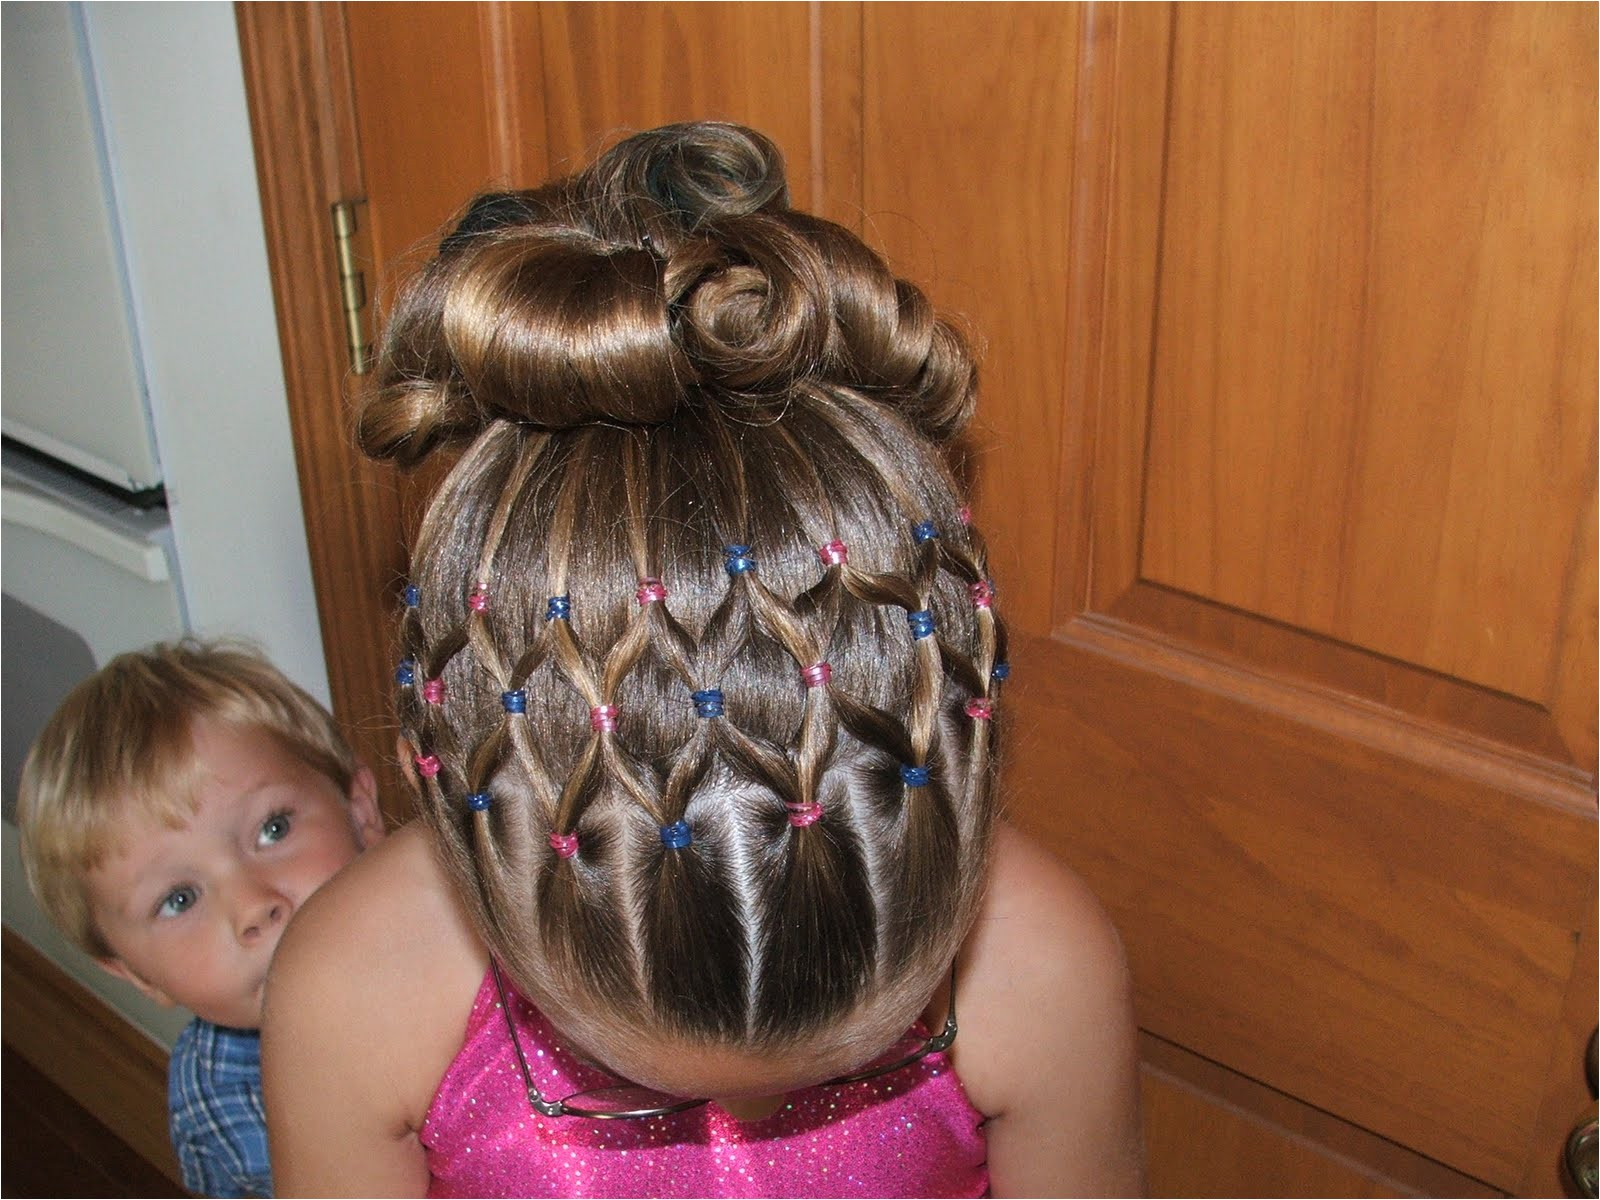 7 Year Old Girl Hairstyles Image New Simple Hairstyles for 4 Year Olds 15 Elegant